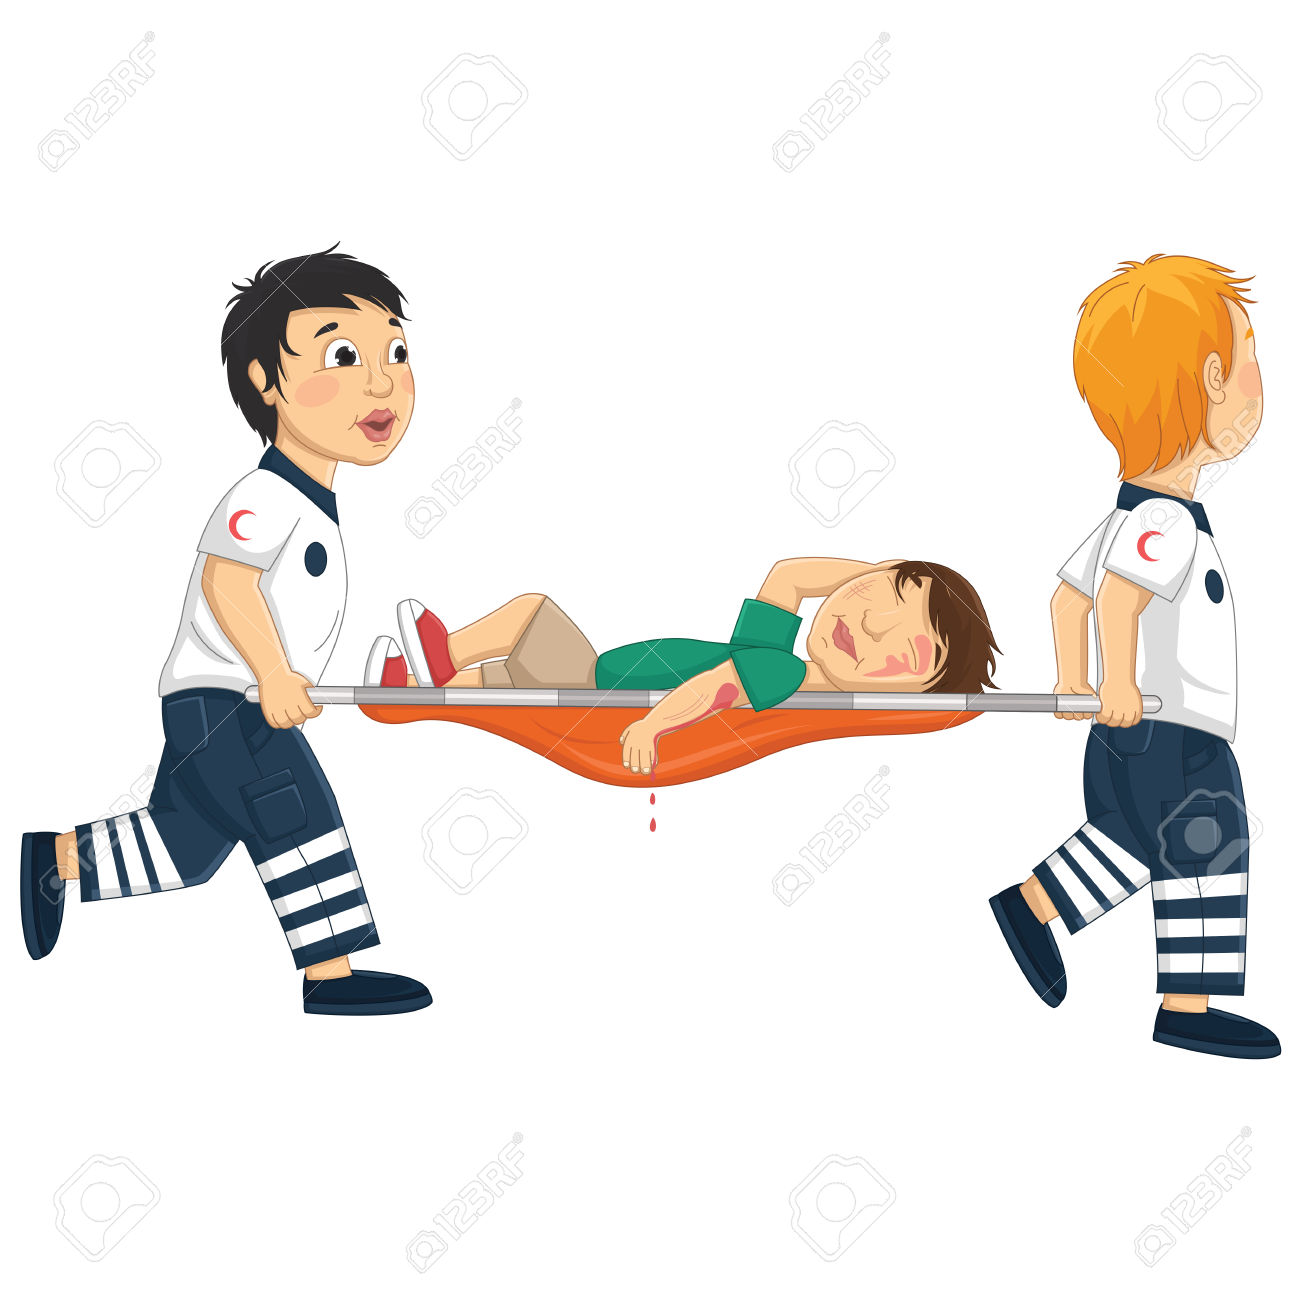 2,600 Stretcher Stock Vector Illustration And Royalty Free.